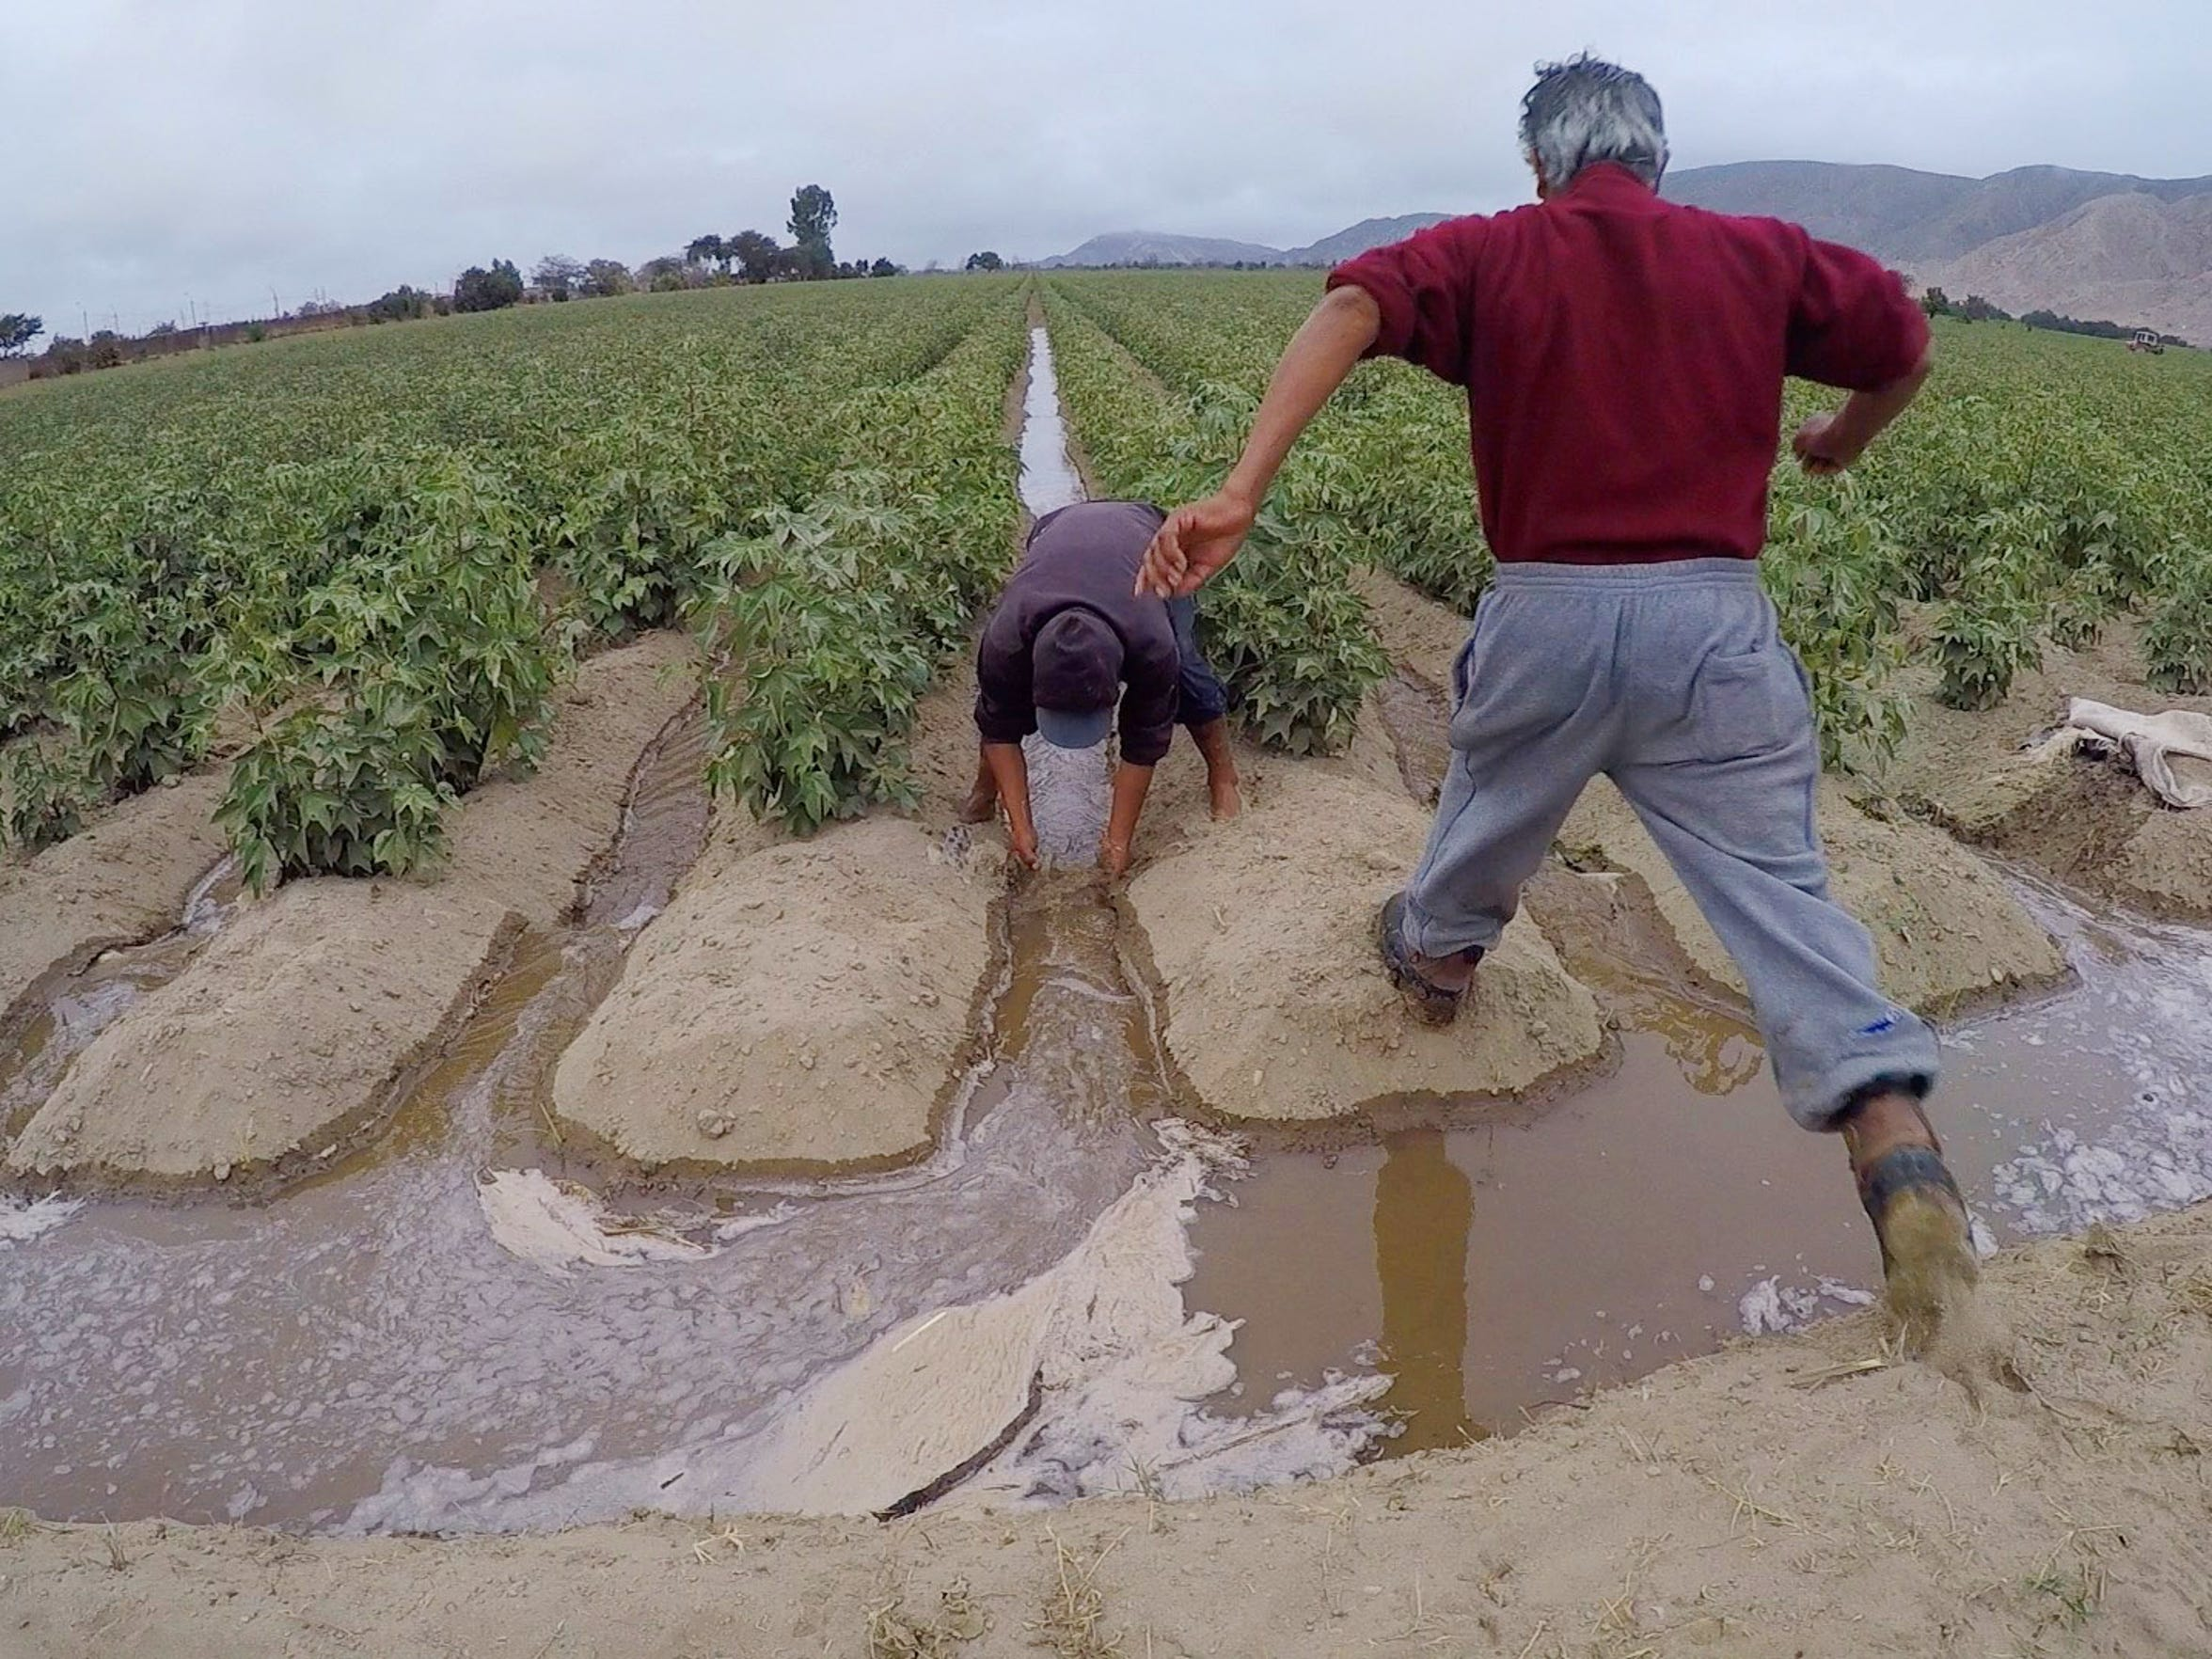 The costs of Peru's farming boom